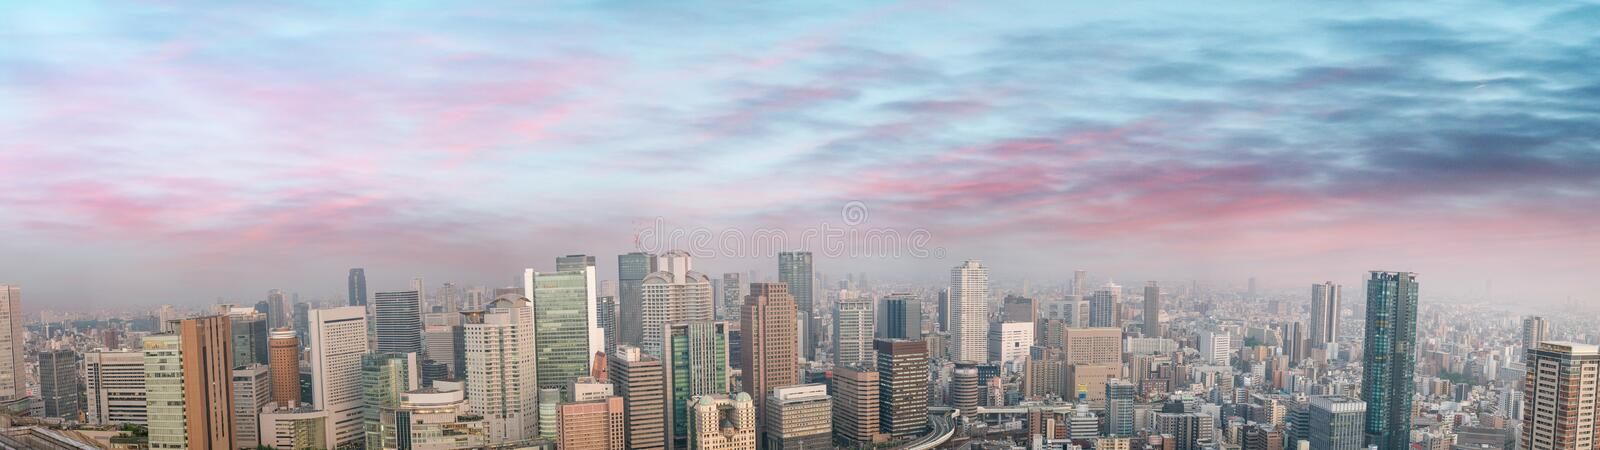 Verbazende panoramische zonsondergangmening van de horizon van Osaka, Japan, Alle advertenties r royalty-vrije stock foto